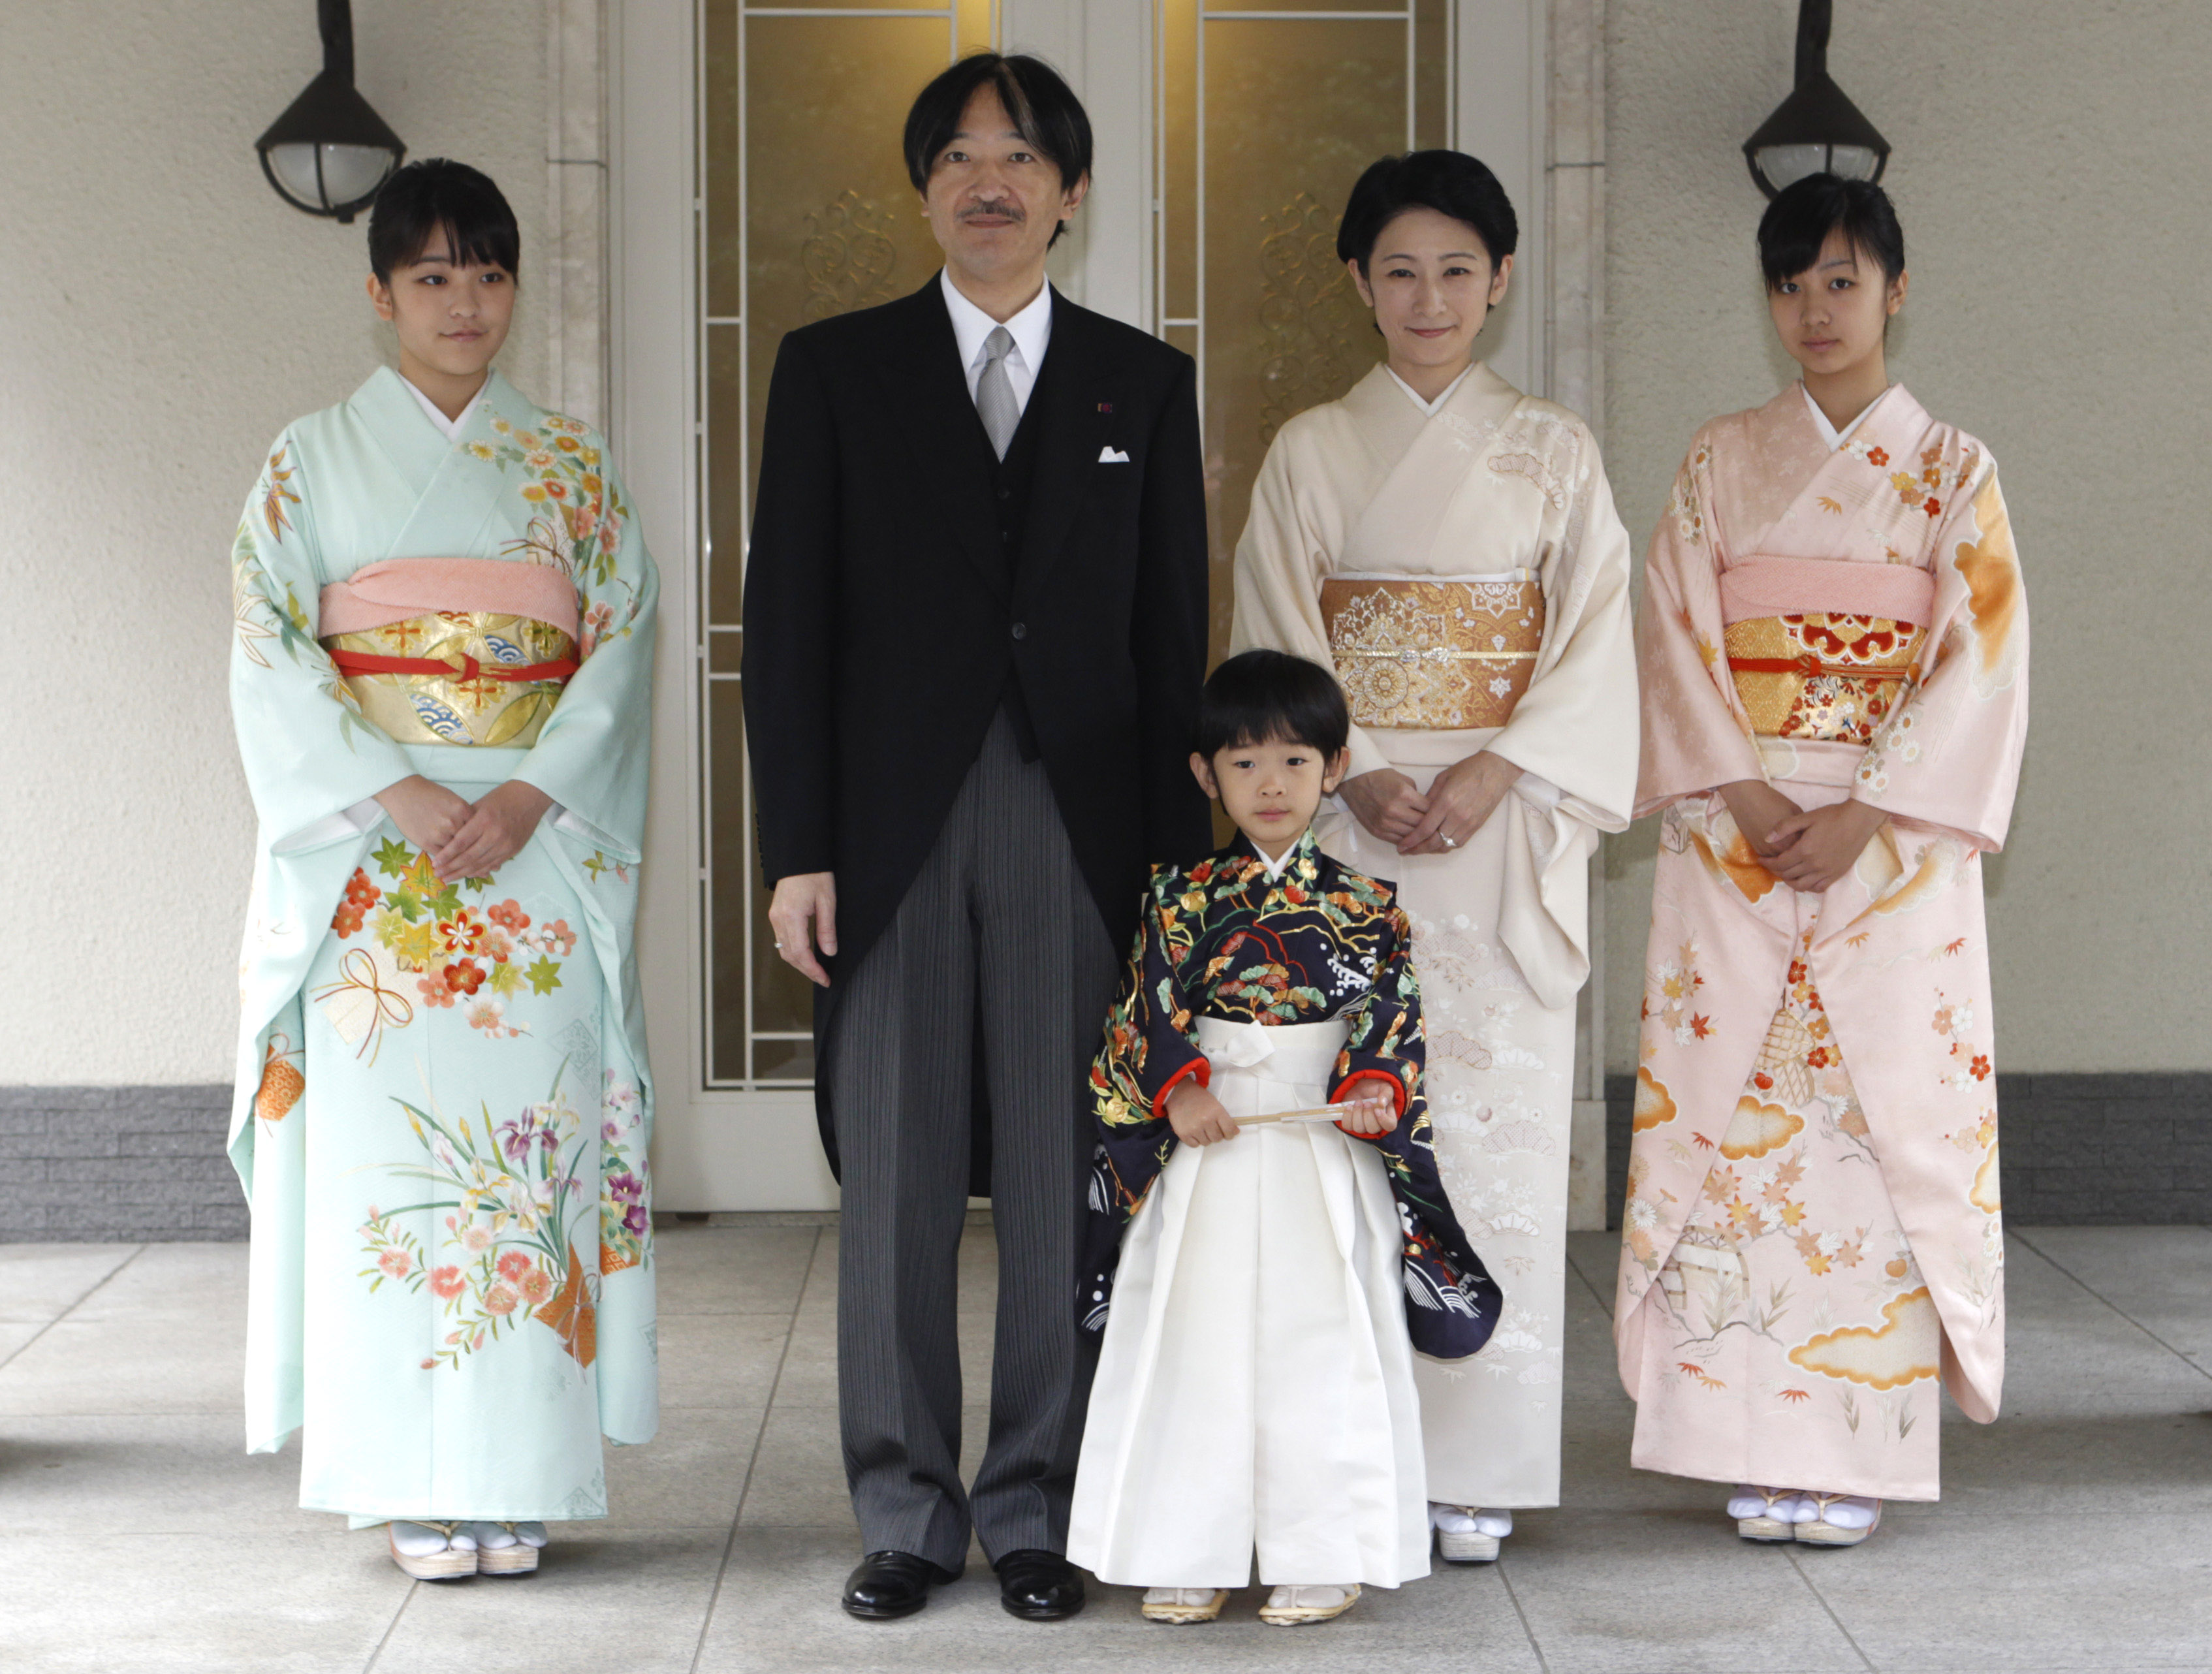 Japan's Prince Hisahito (C) wearing traditional ceremonial attire is accompanied by his father Prince Akishino (2nd L), mother Princess Kiko (centre R) and sisters Princess Mako (L) Princess Kako (R) after the Chakko-no-Gi and Fukasogi-no-gi ceremonies at the Akasaka imperial estate in Tokyo on Nov. 3, 2011. (ISSEI KATO/AFP/Getty Images)